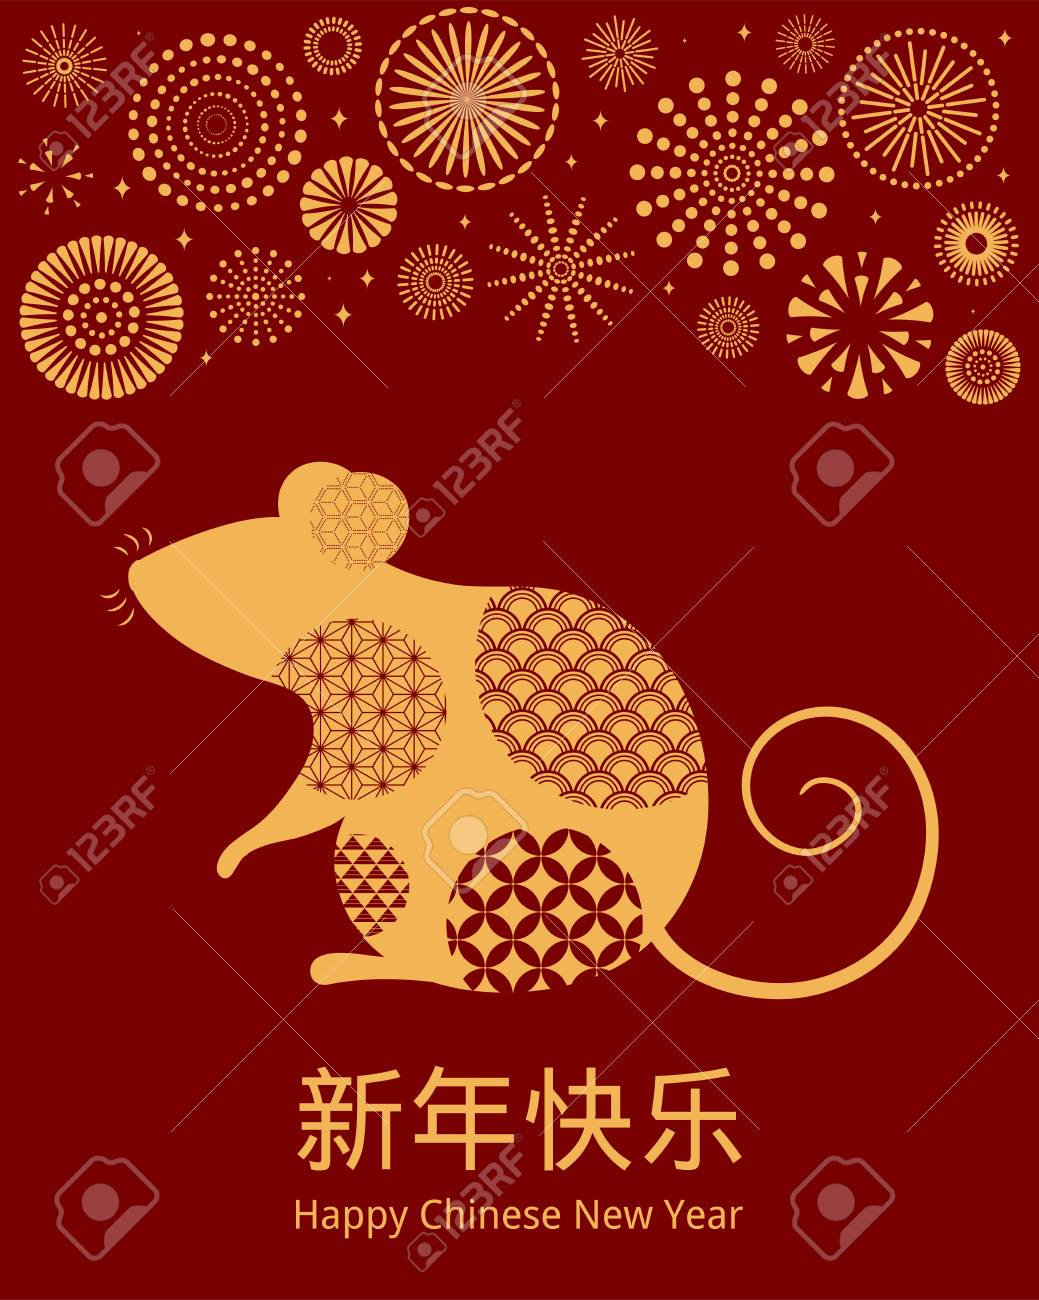 2020 New Year greeting card with rat silhouette, fireworks, Chinese text Happy New Year, gold on red. Vector illustration. Flat style design. Concept for holiday banner, decor element. - 118713983